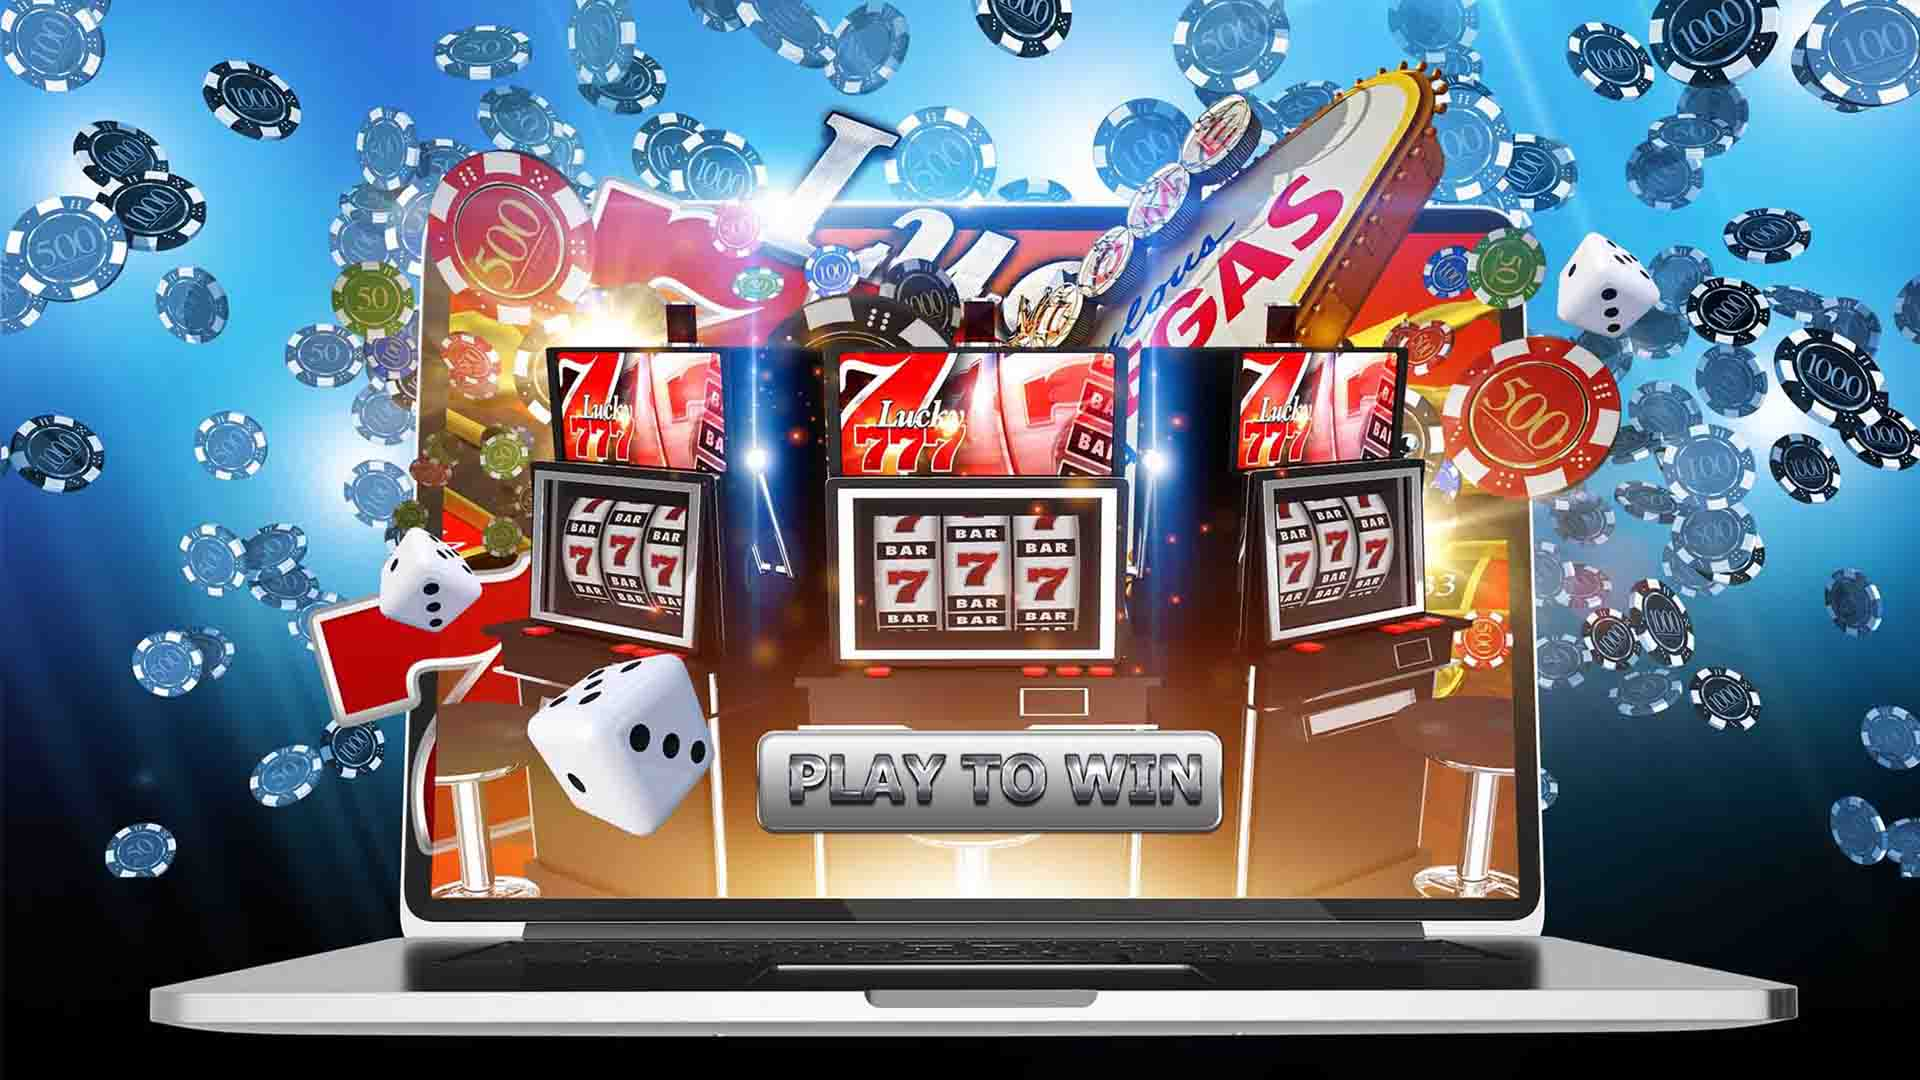 Most considerable features of the bets10 live betting site